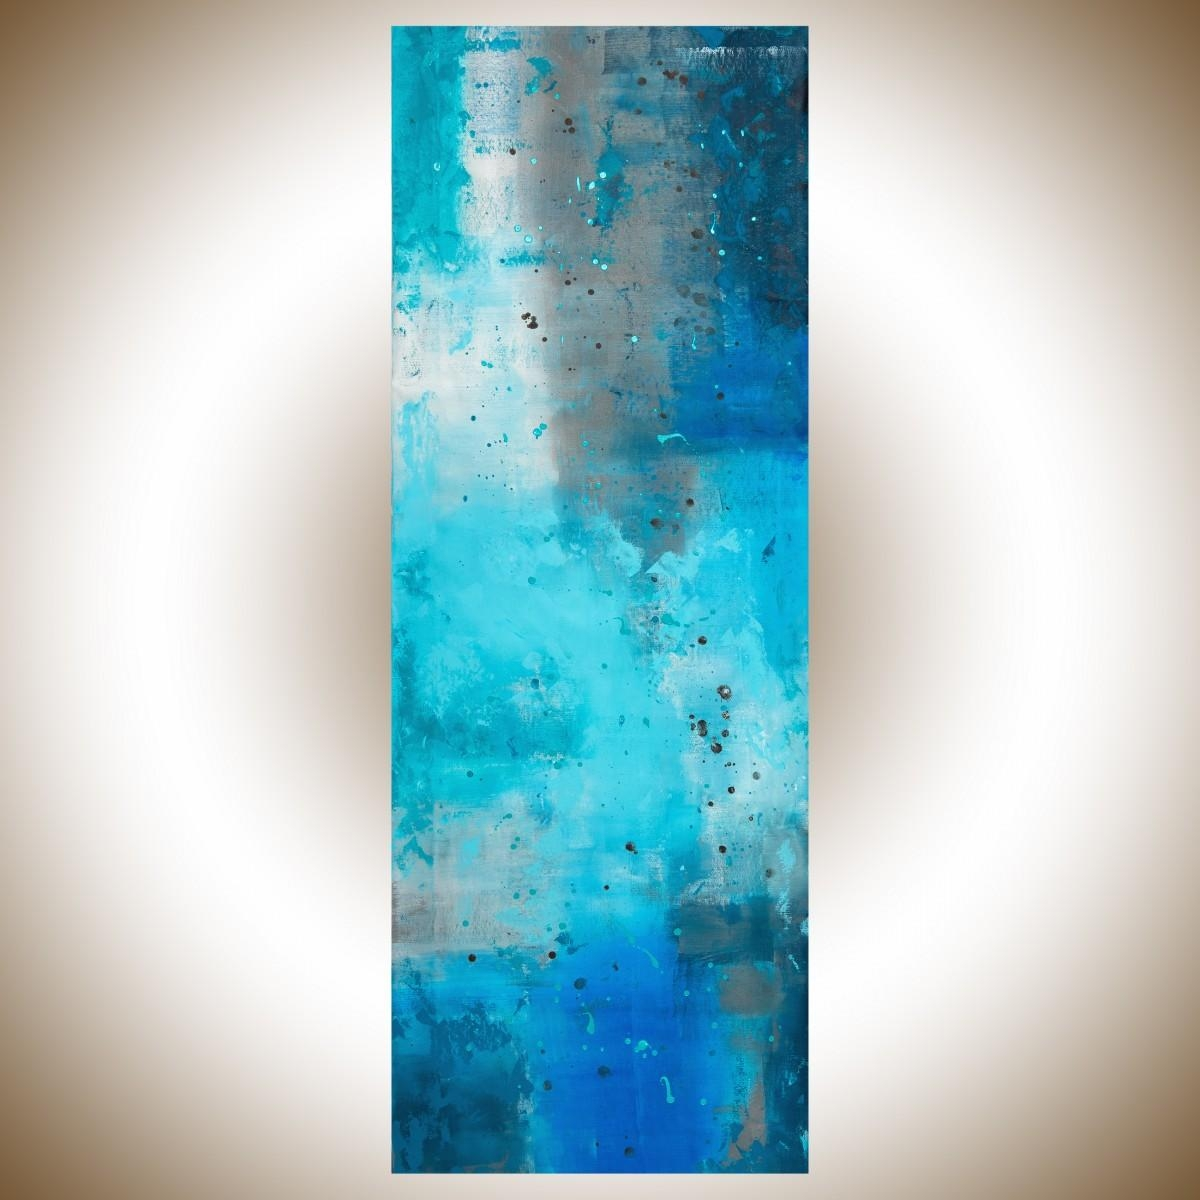 """The Mistqiqigallery 70""""x24"""" Un Stretched Canvas Original Regarding Turquoise And Brown Wall Art (Image 18 of 20)"""